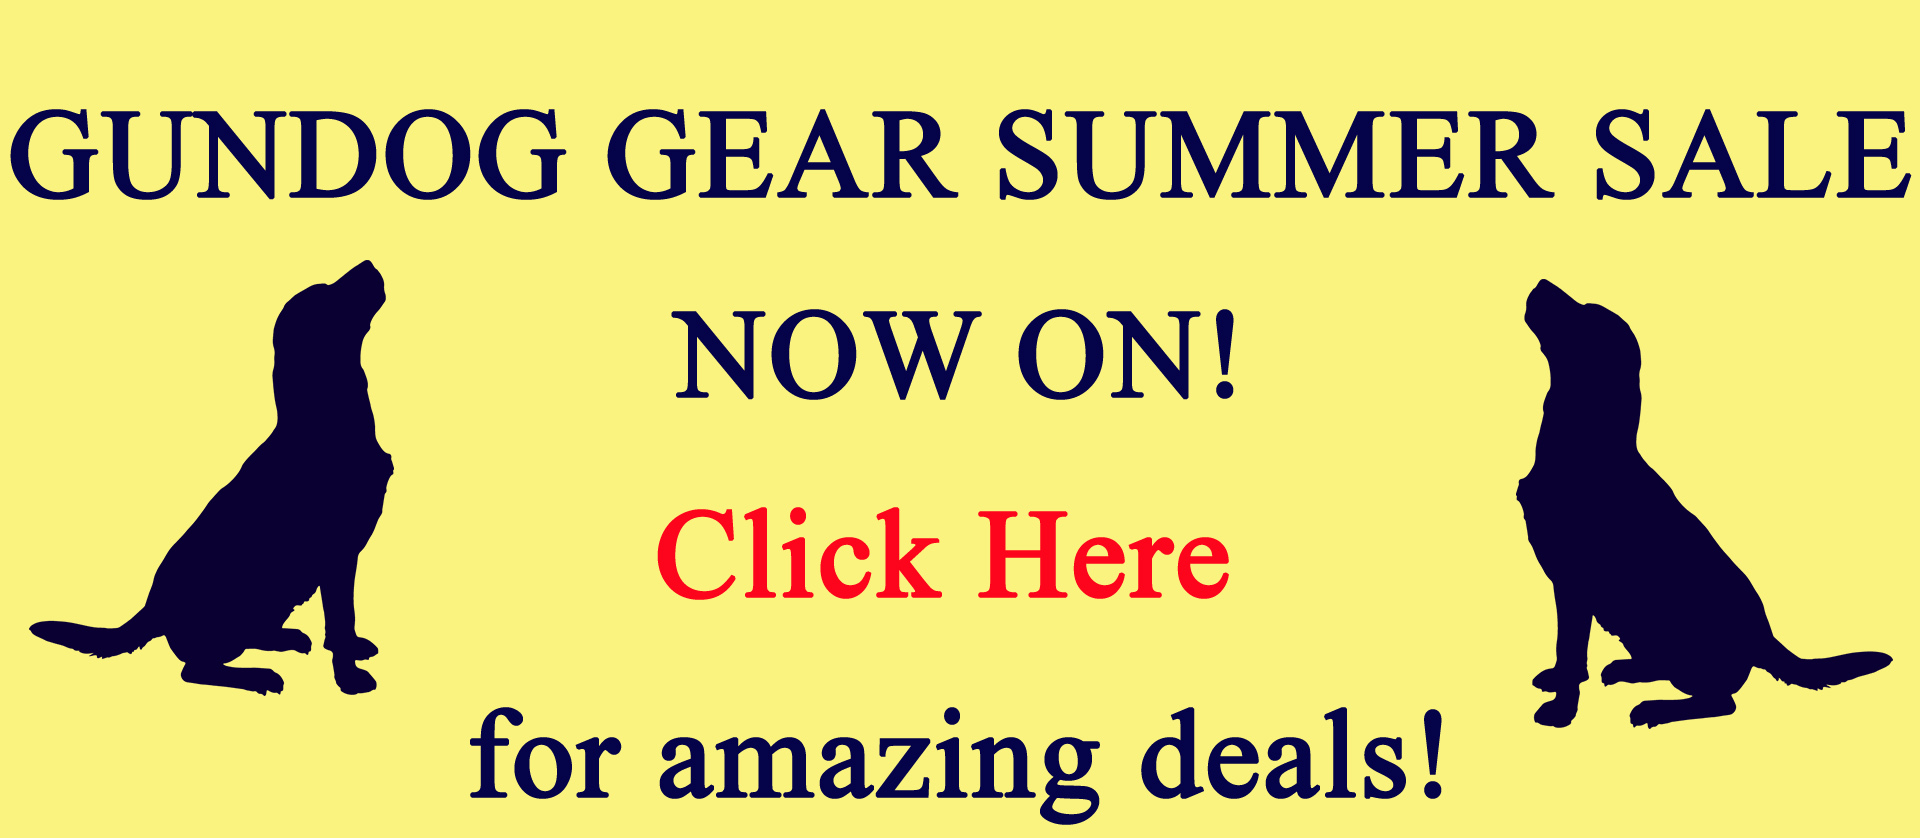 Gundog Gear Summer Sale Now On!